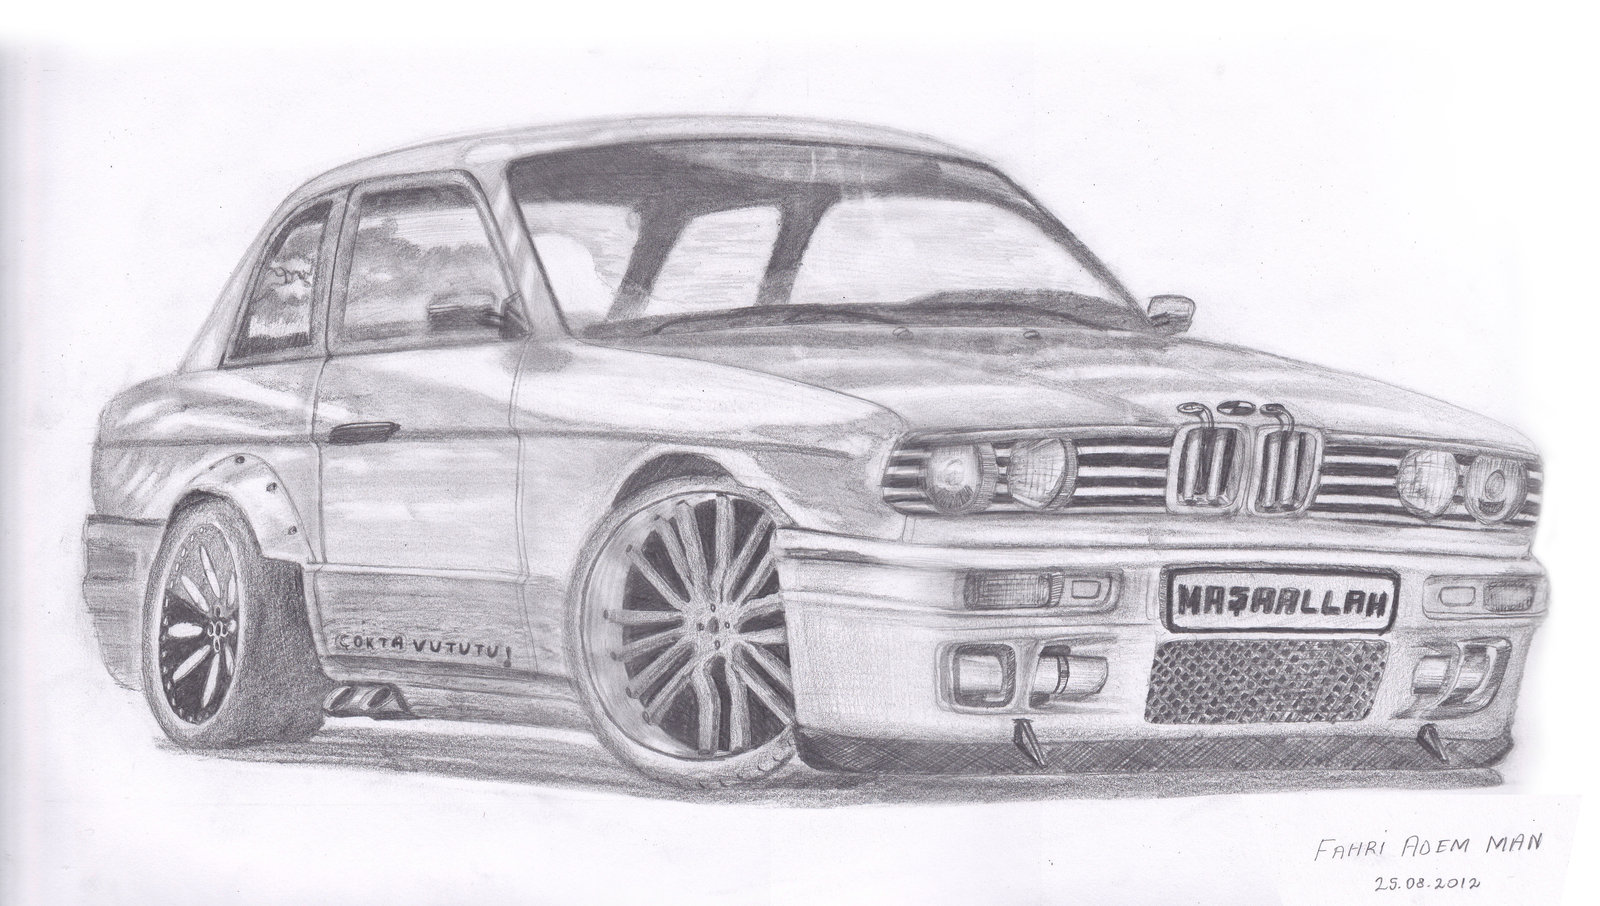 Drawn vehicle doodle Realistic Pencil BMW Drawing Photo